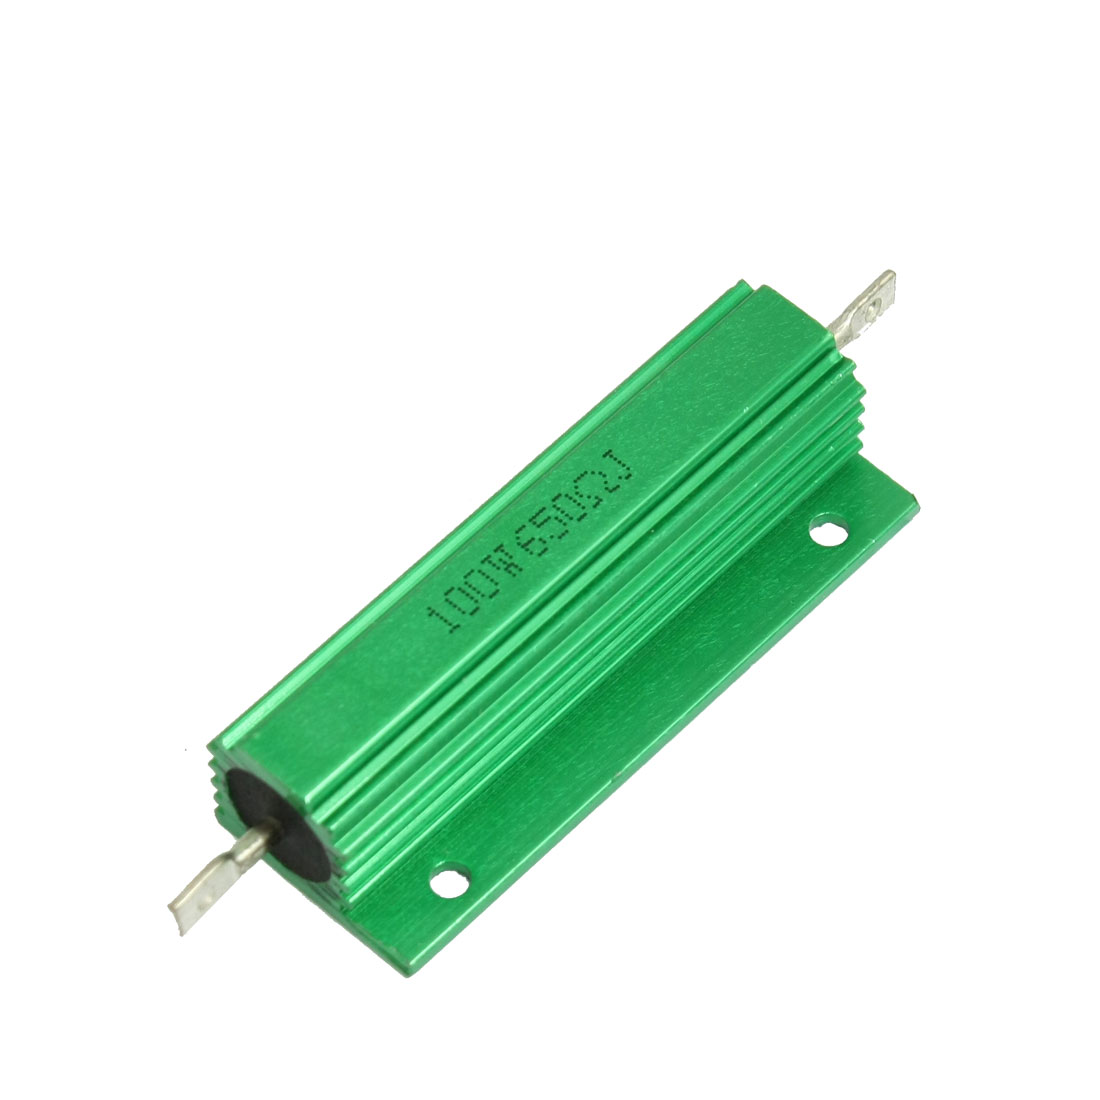 100W 650 Ohm Green Aluminium Clad Chassis Mounted Housed Resistor